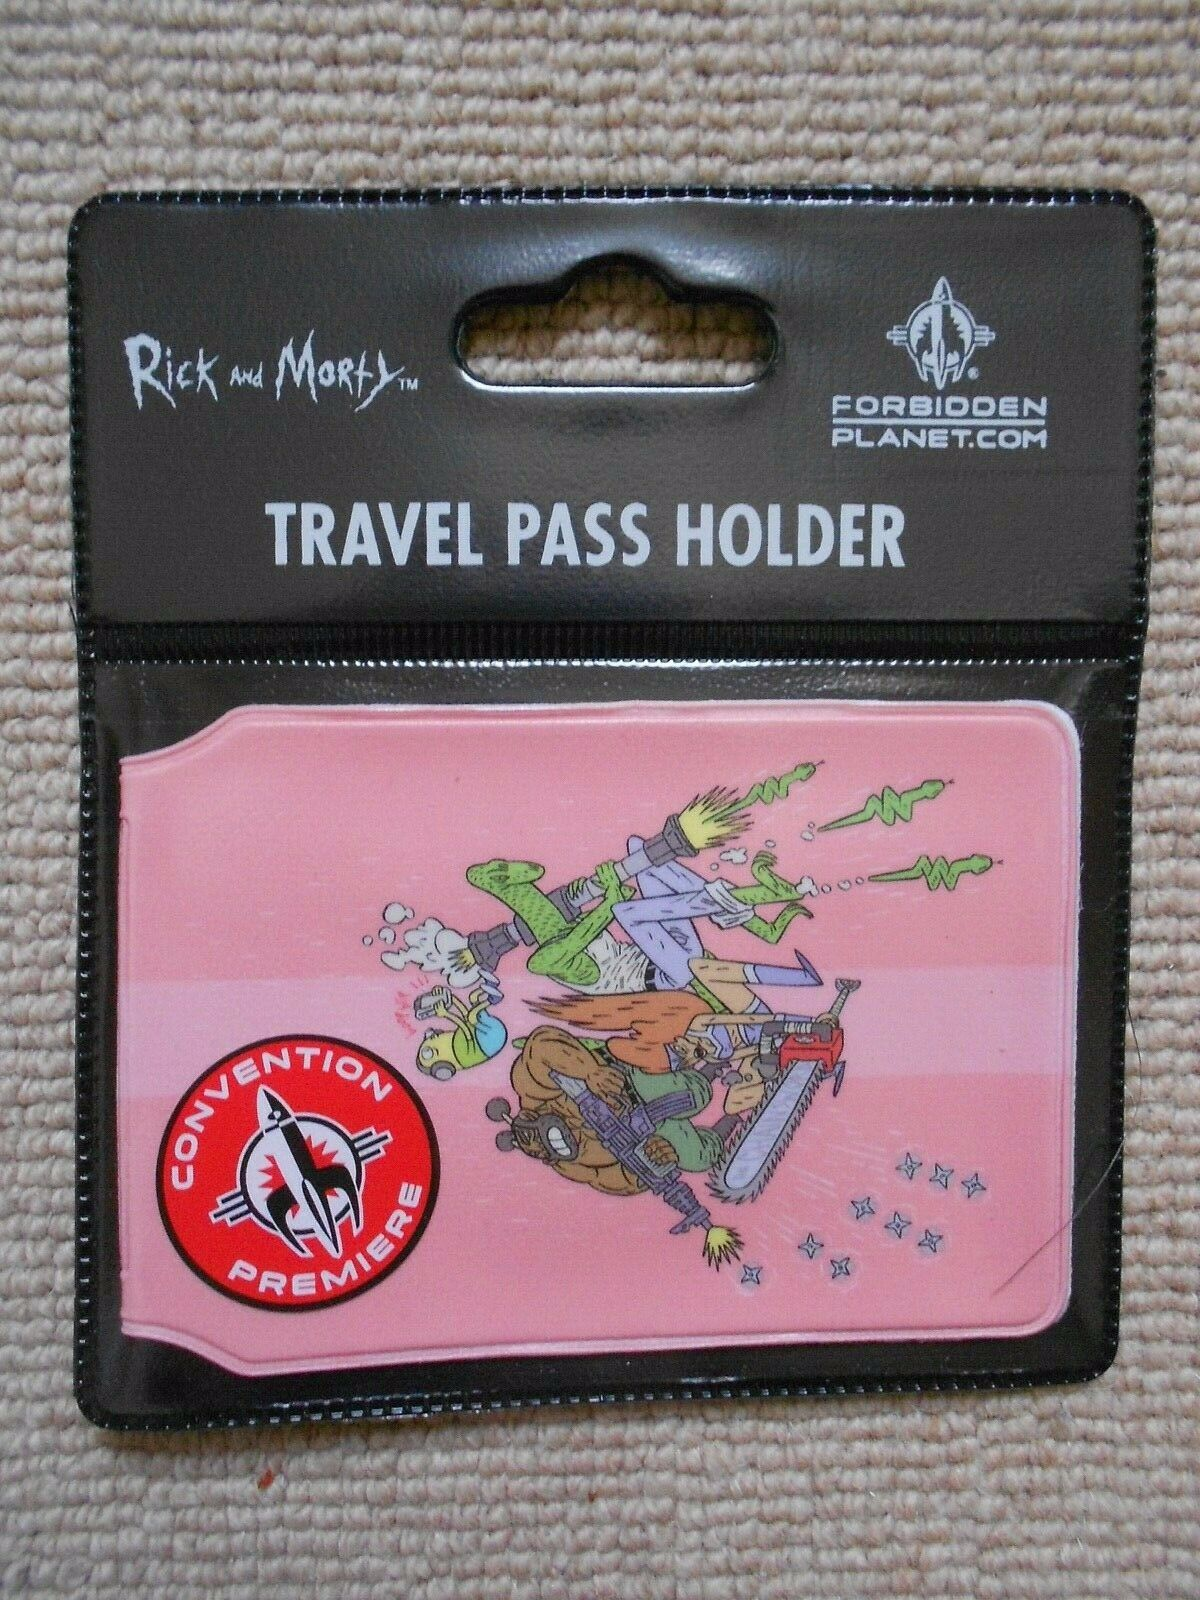 RICK AND MORTY BALL FONDLERS . ID CARD HOLDER TRAVEL TRAIN OYSTER CARD HOLDER